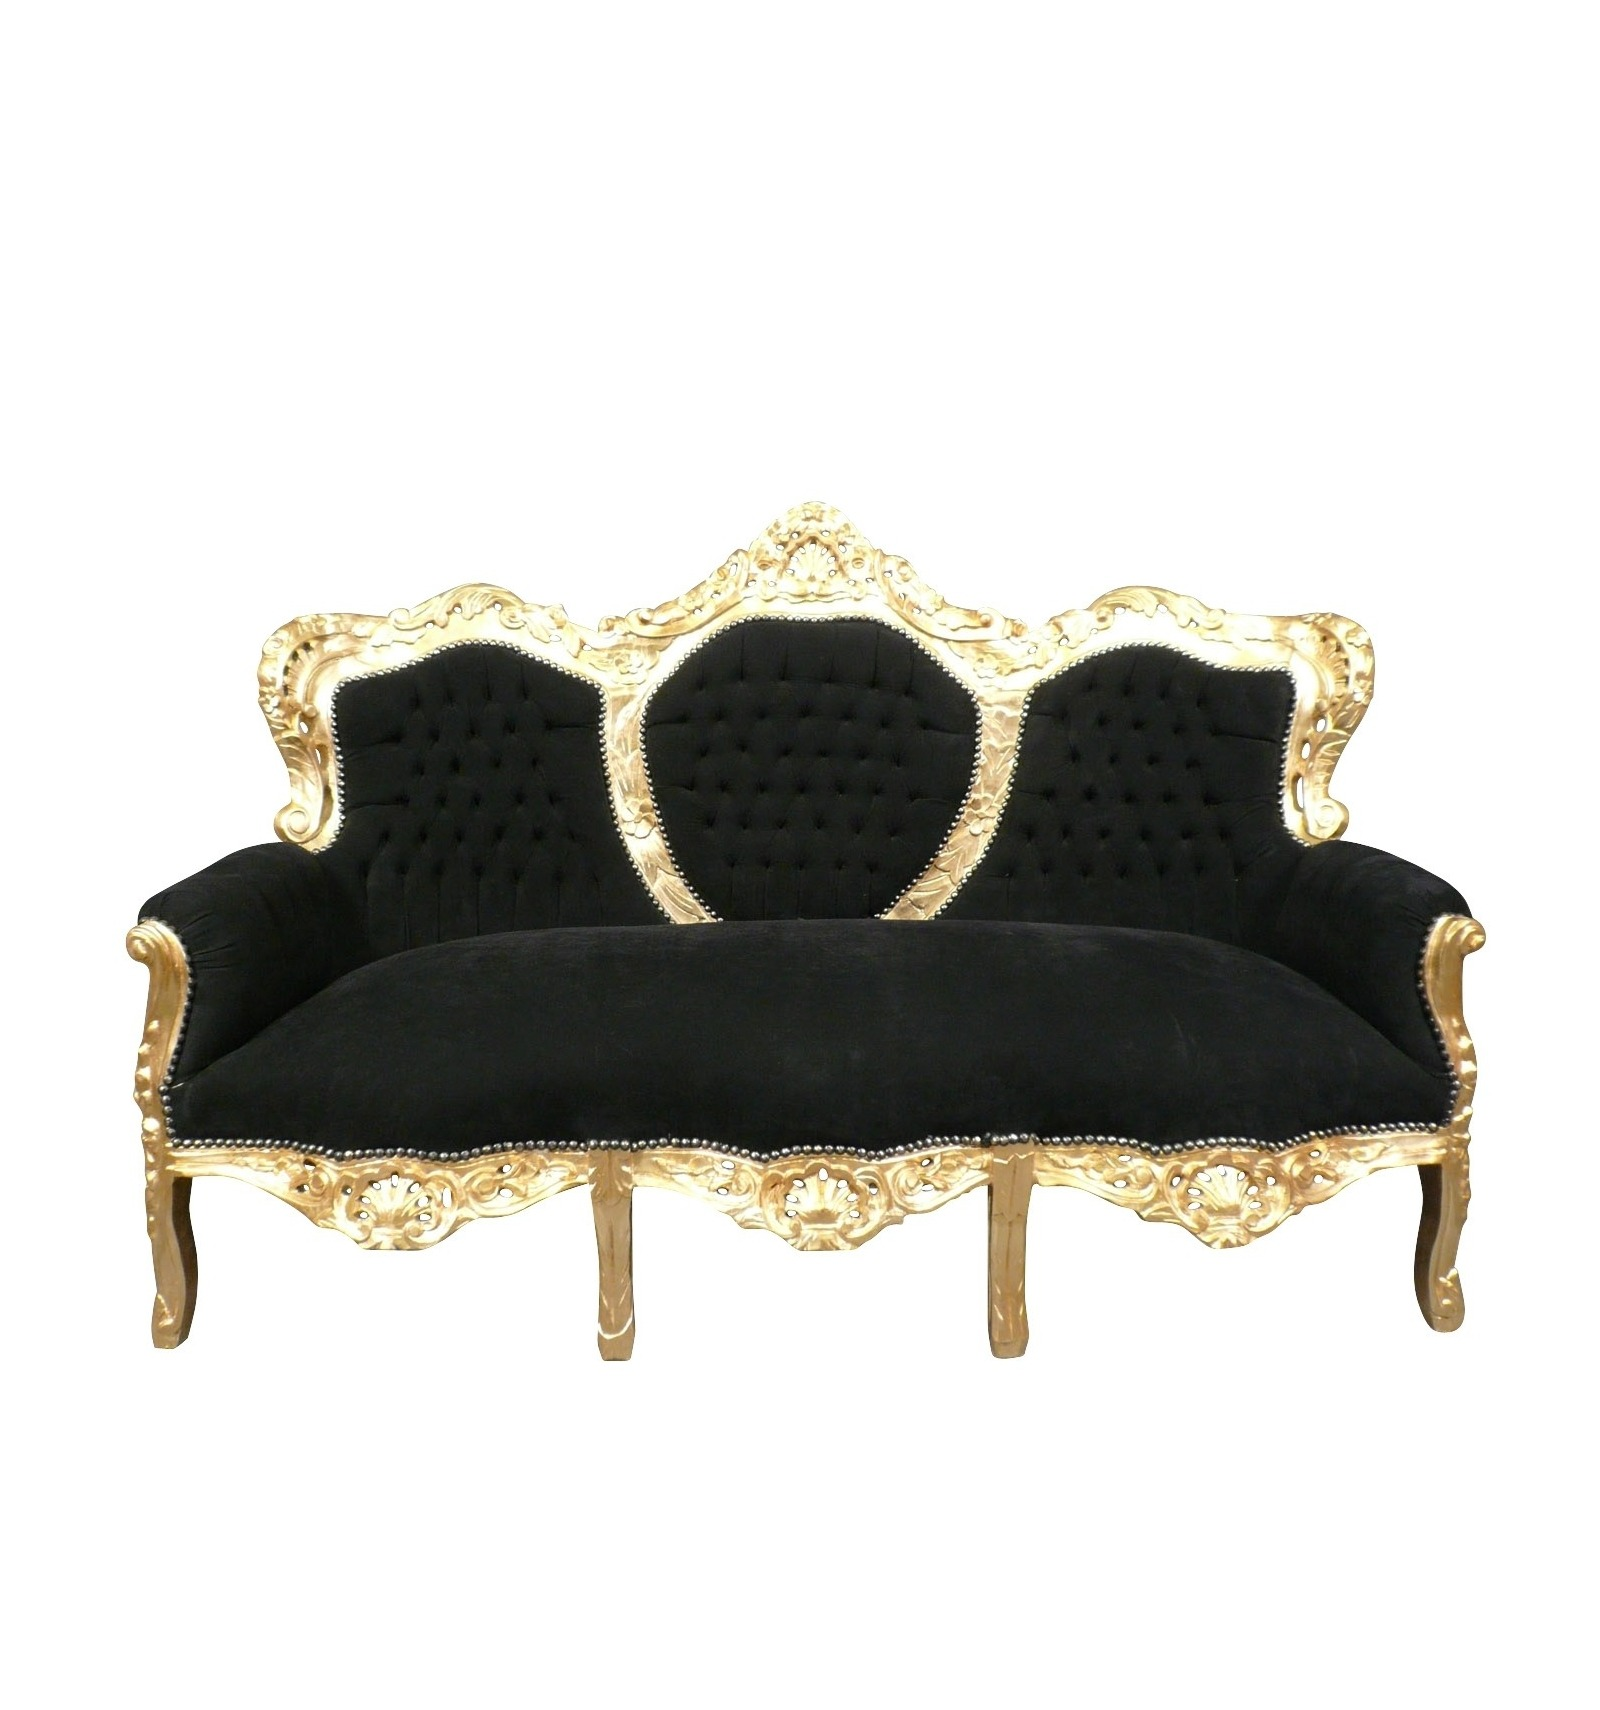 Astounding Baroque Black And Gold Sofa Pabps2019 Chair Design Images Pabps2019Com